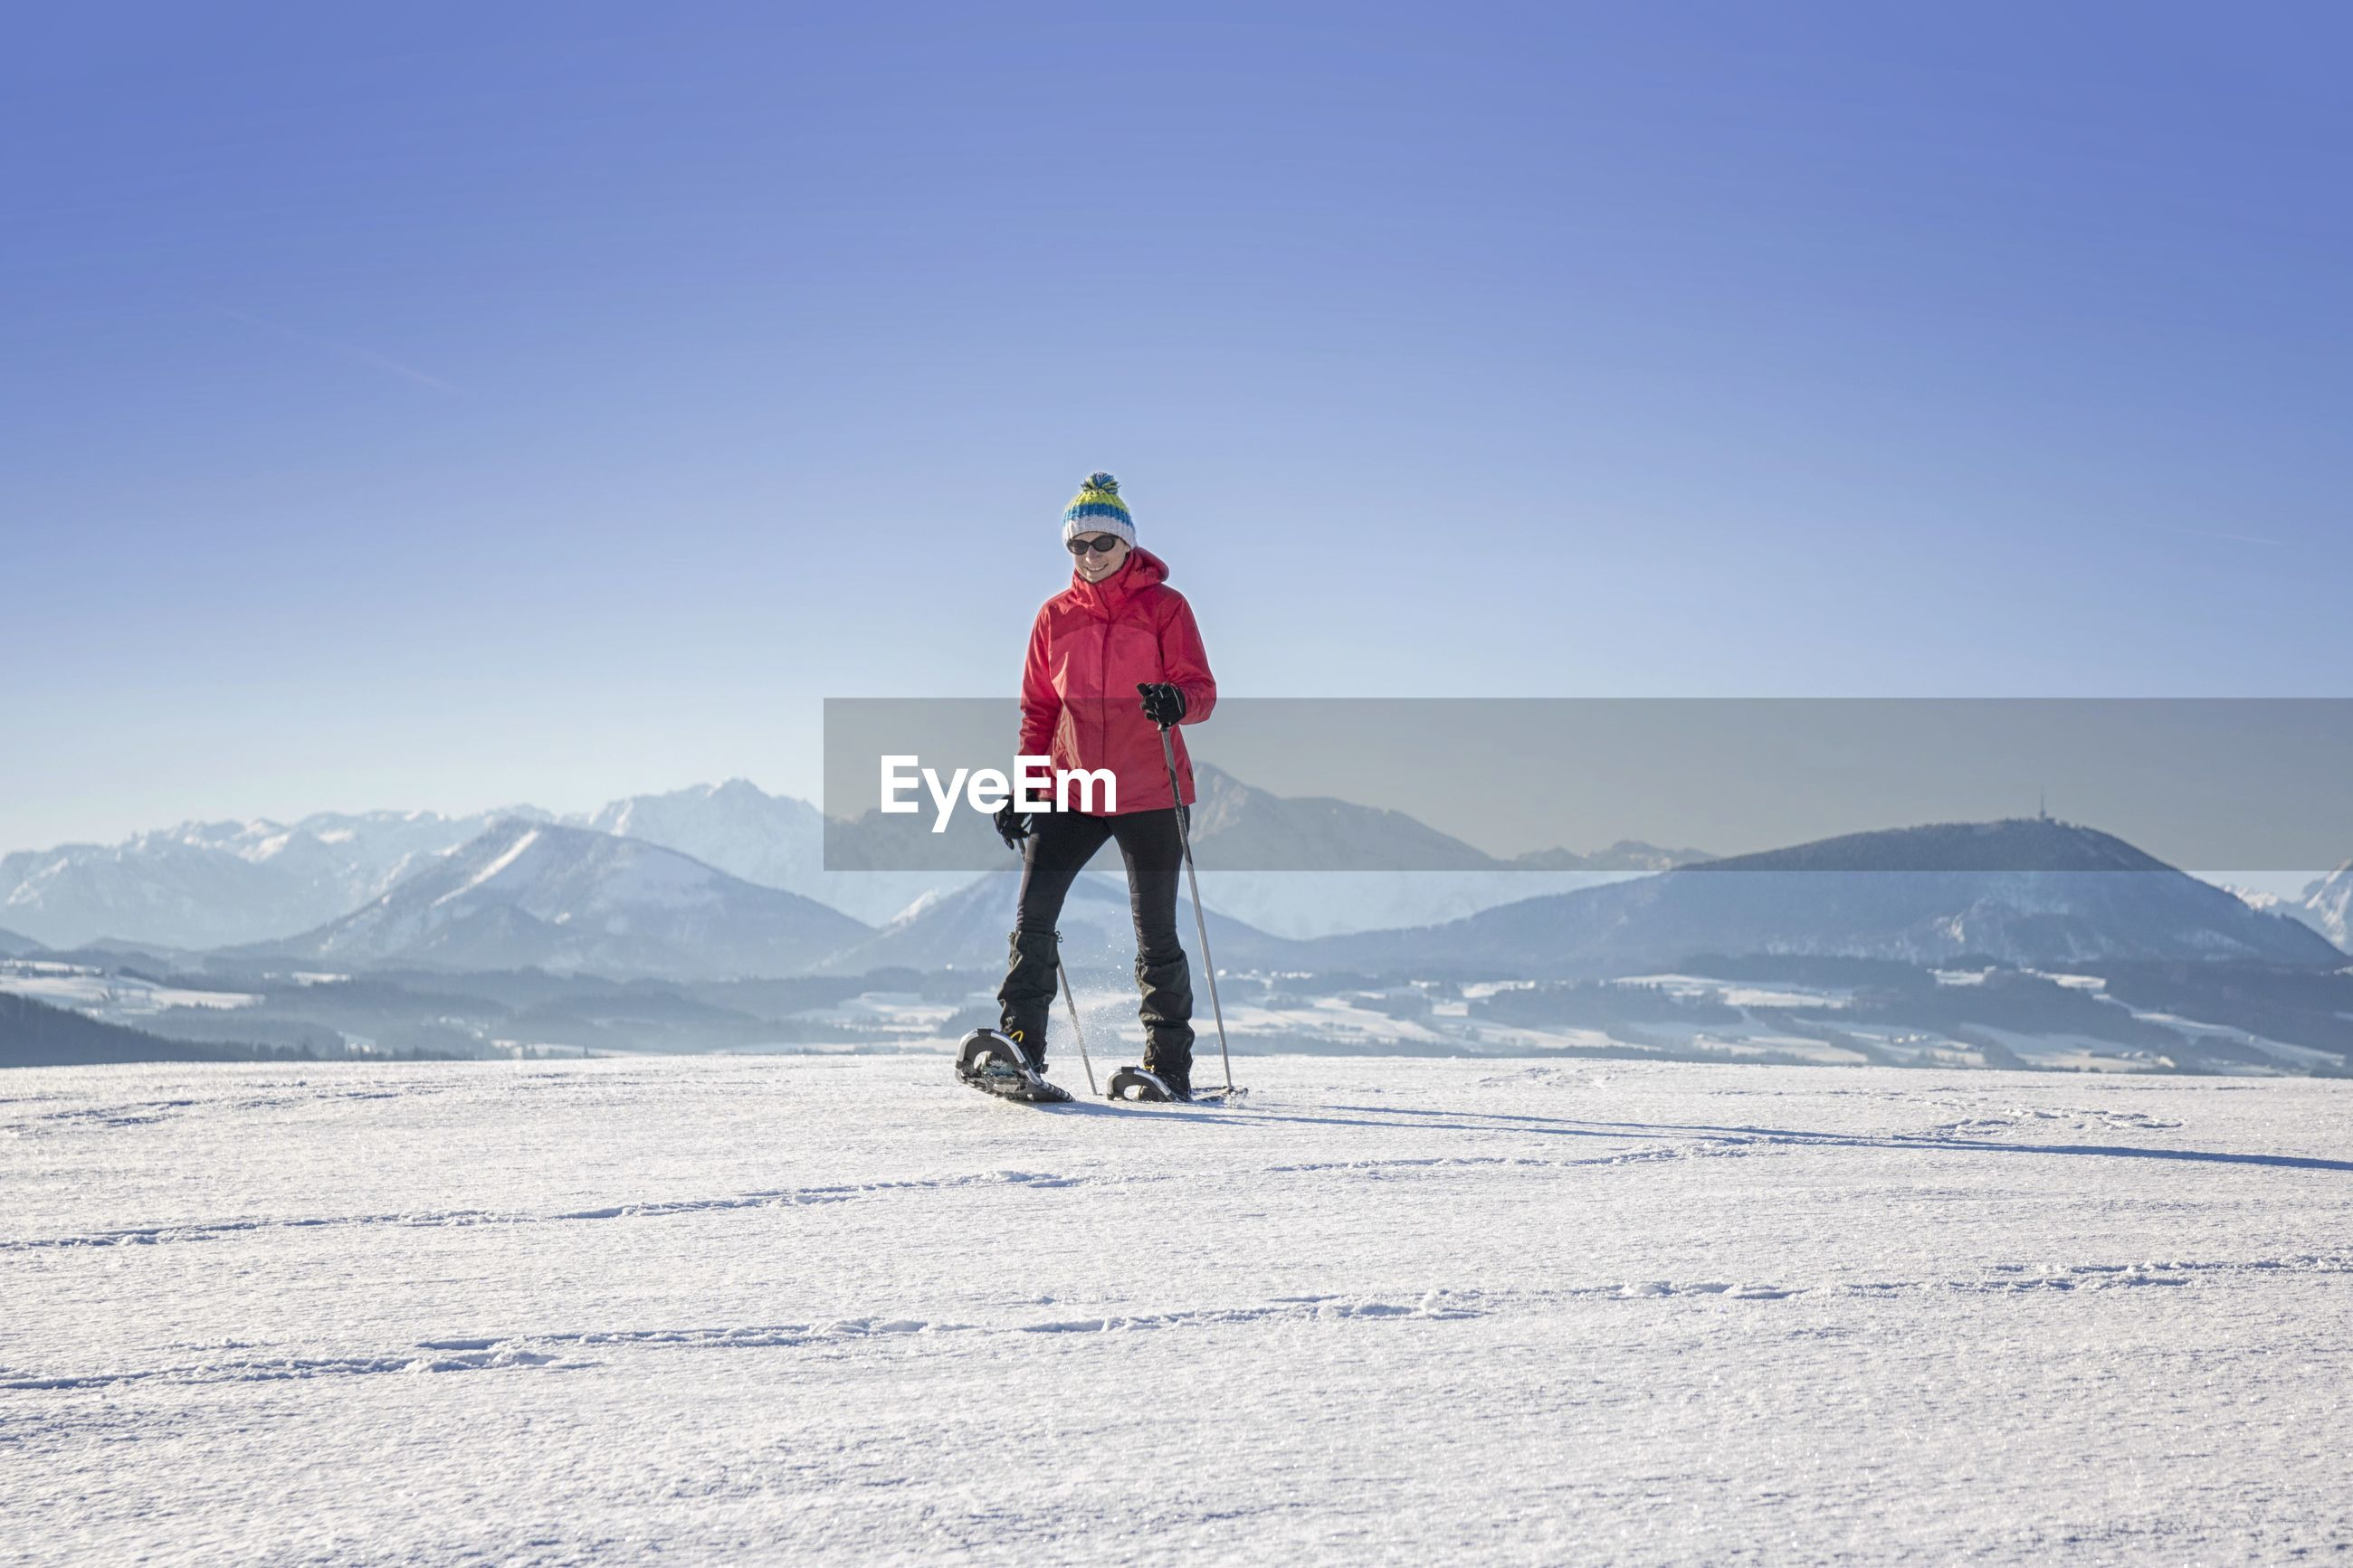 Woman snowboarding on land against clear blue sky